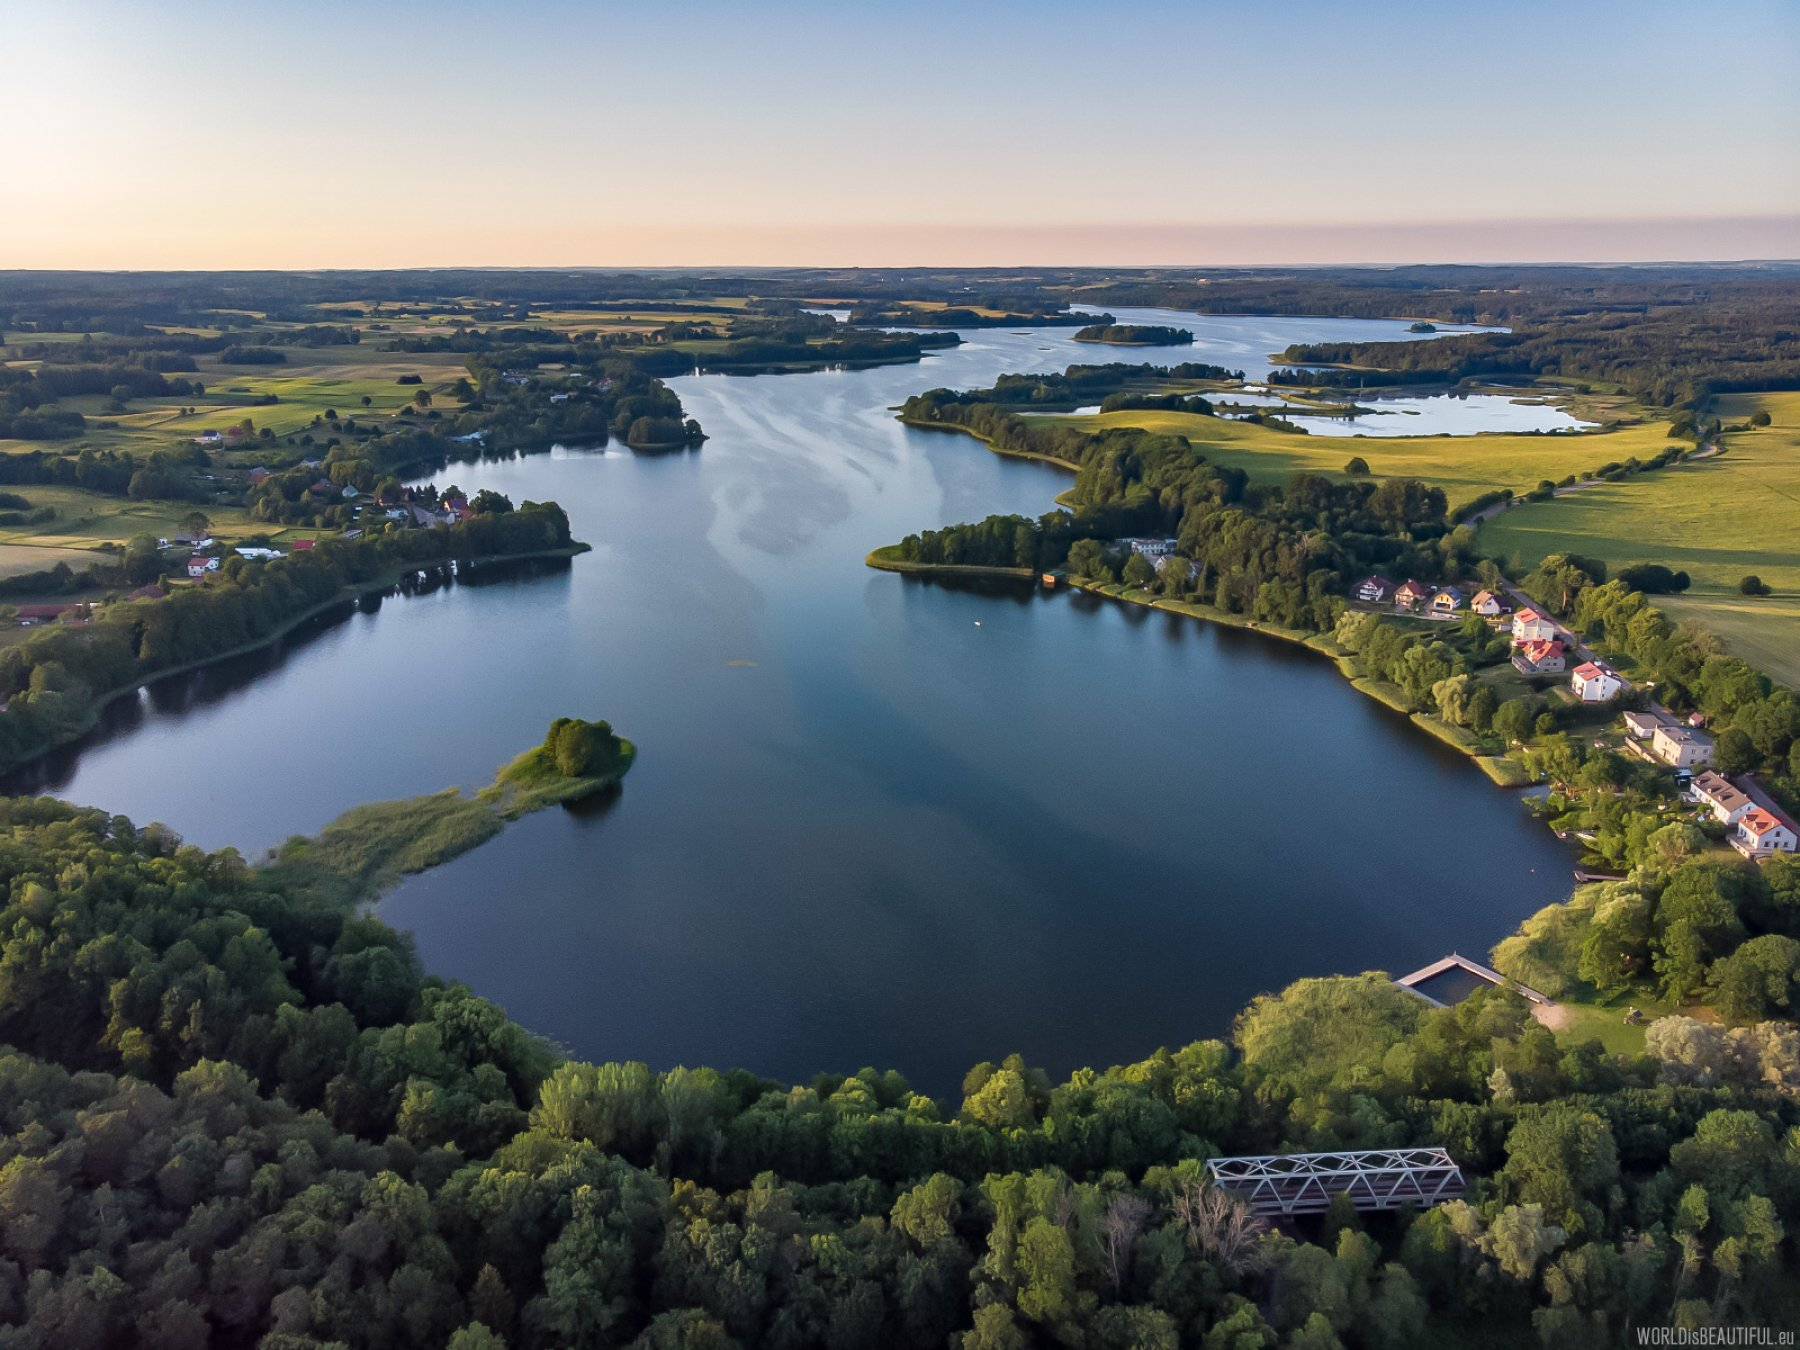 Masurian Lakes from a bird's eye view